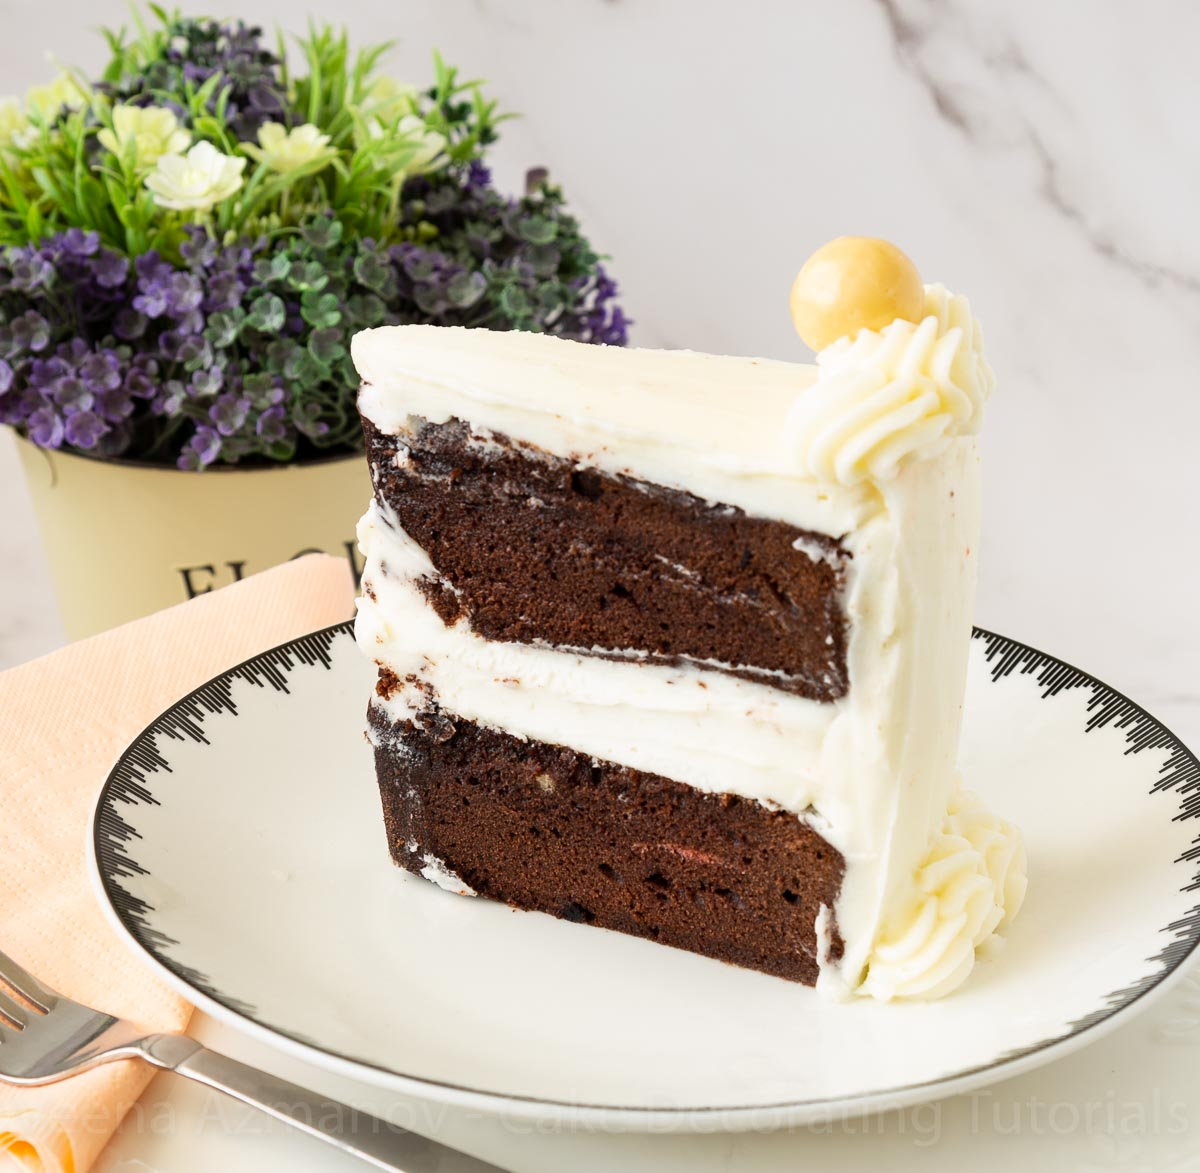 A white plate with chocolate cake.